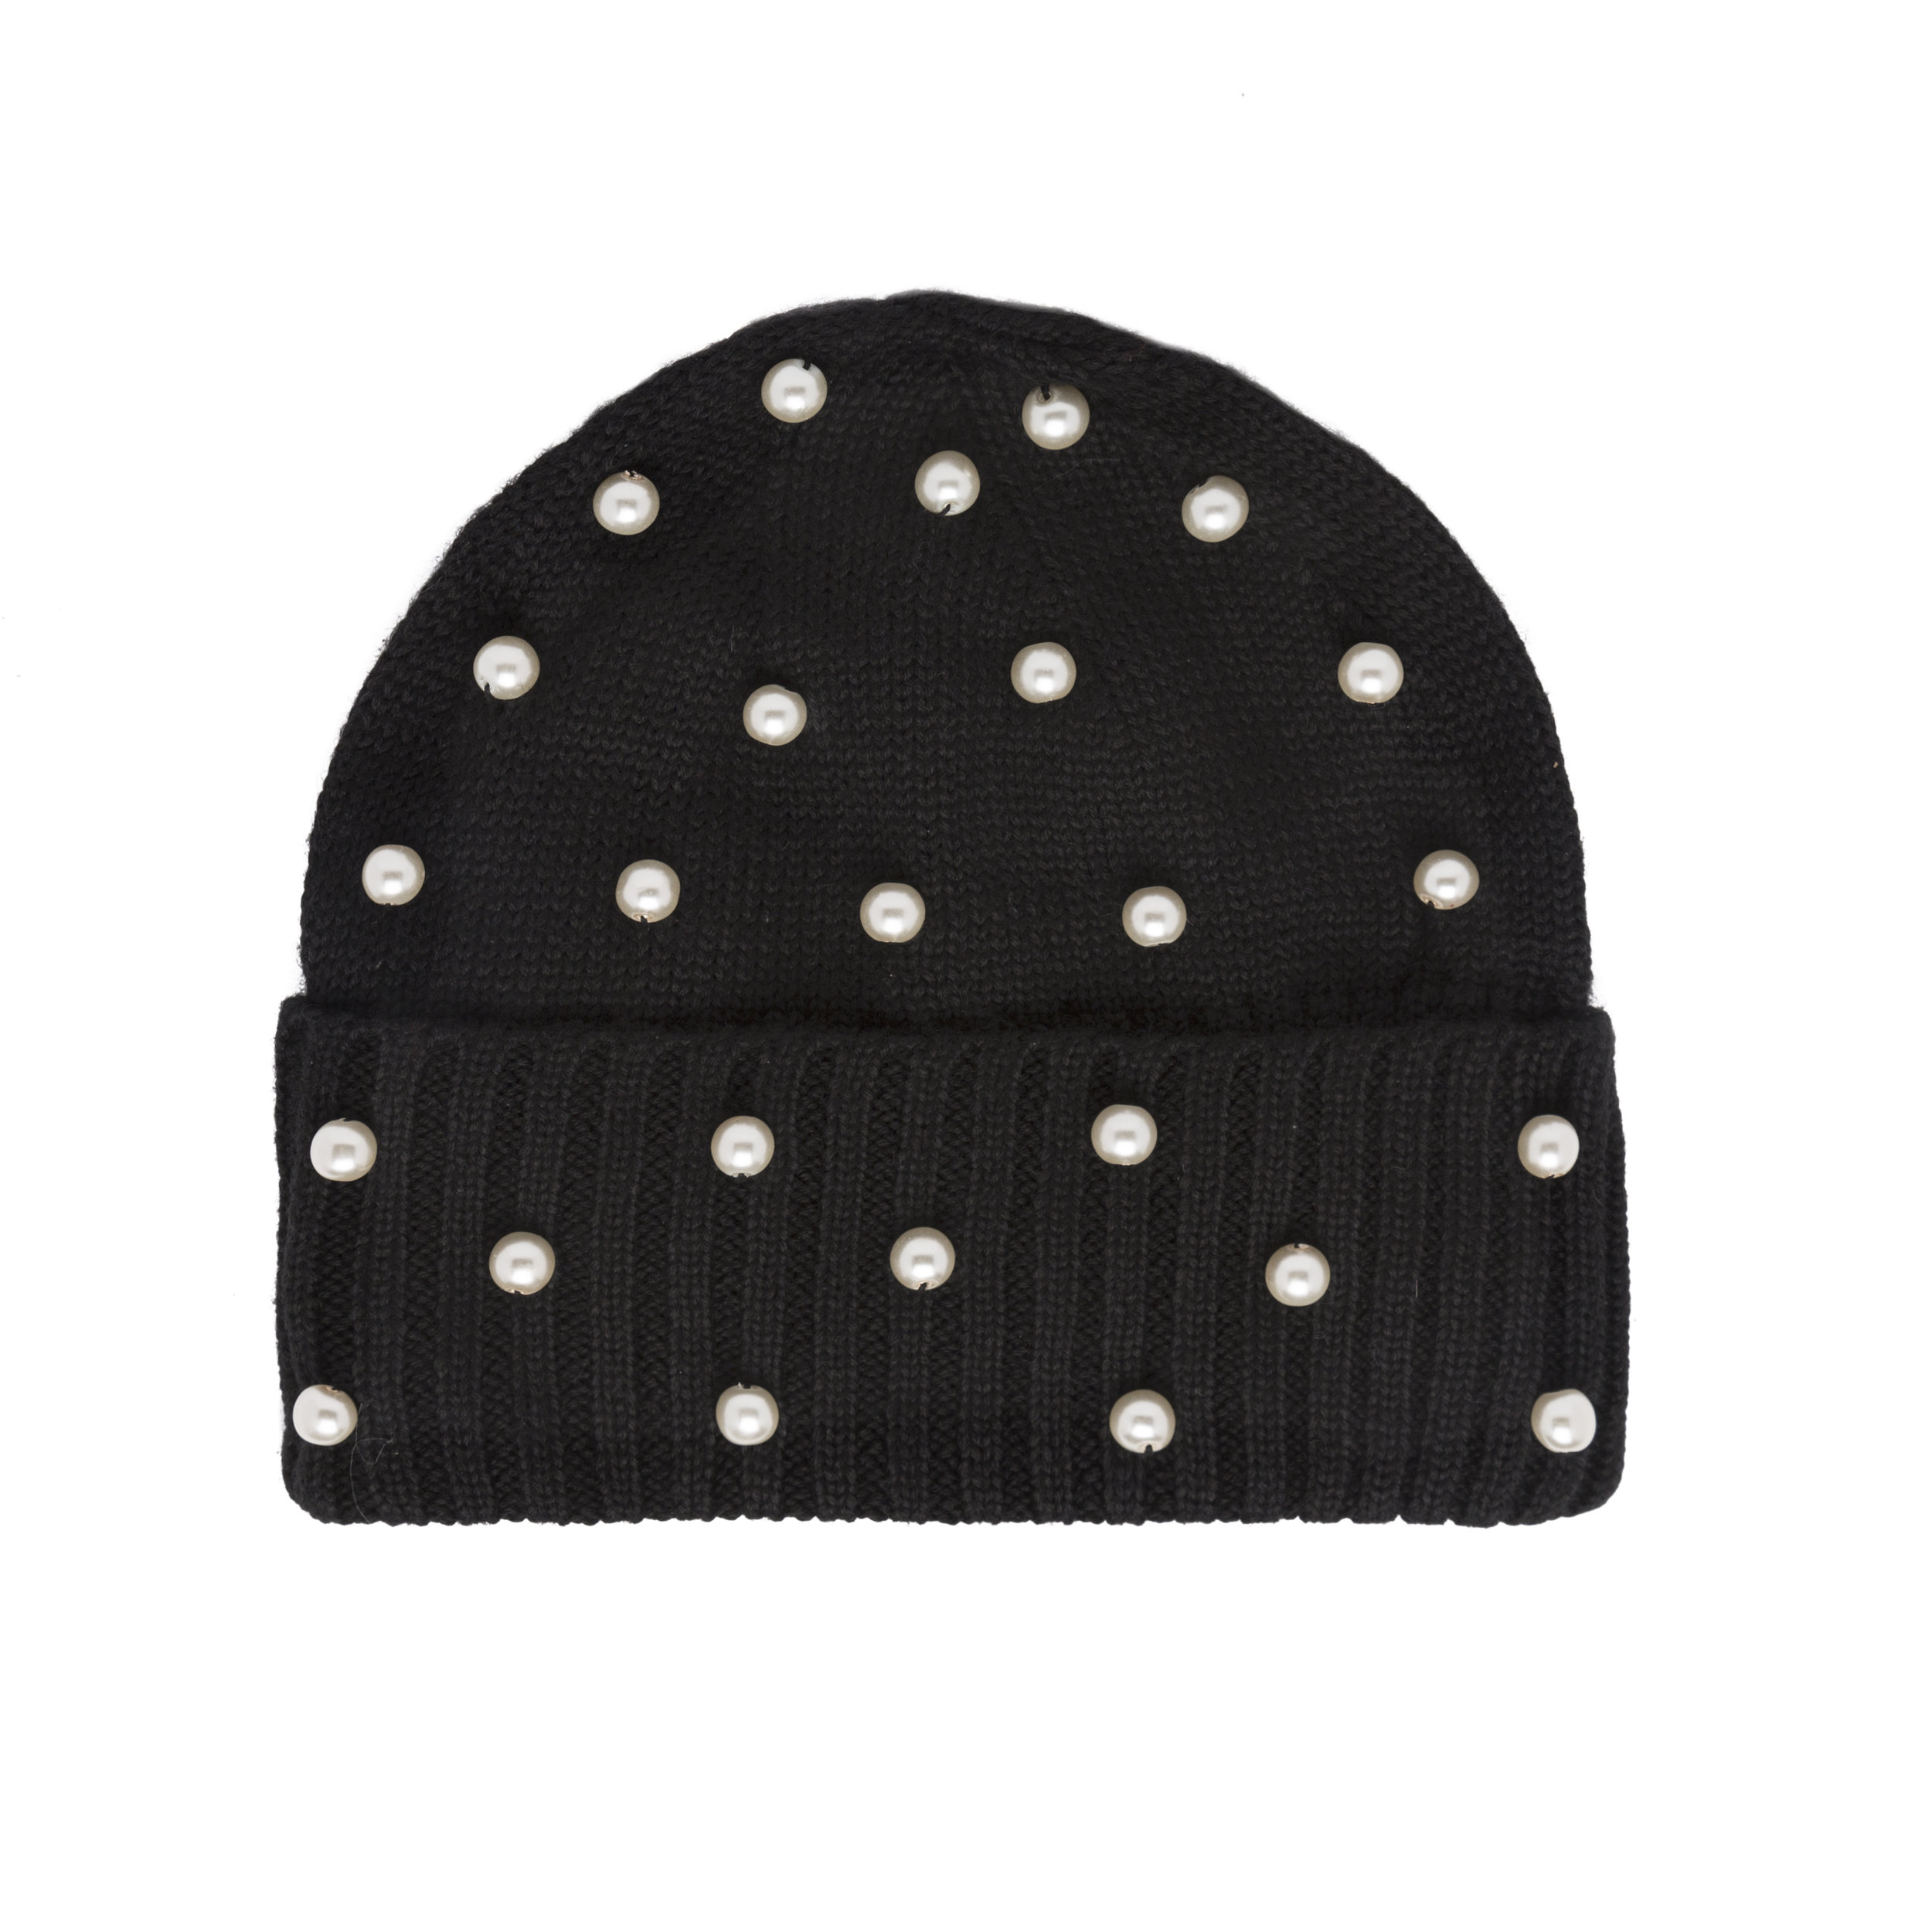 Pearls and studs are so in right now. Bling out your beanie! Check out  Azeeza , they have awesome sales going on. Pearl Scattered Black Beanie - $60.